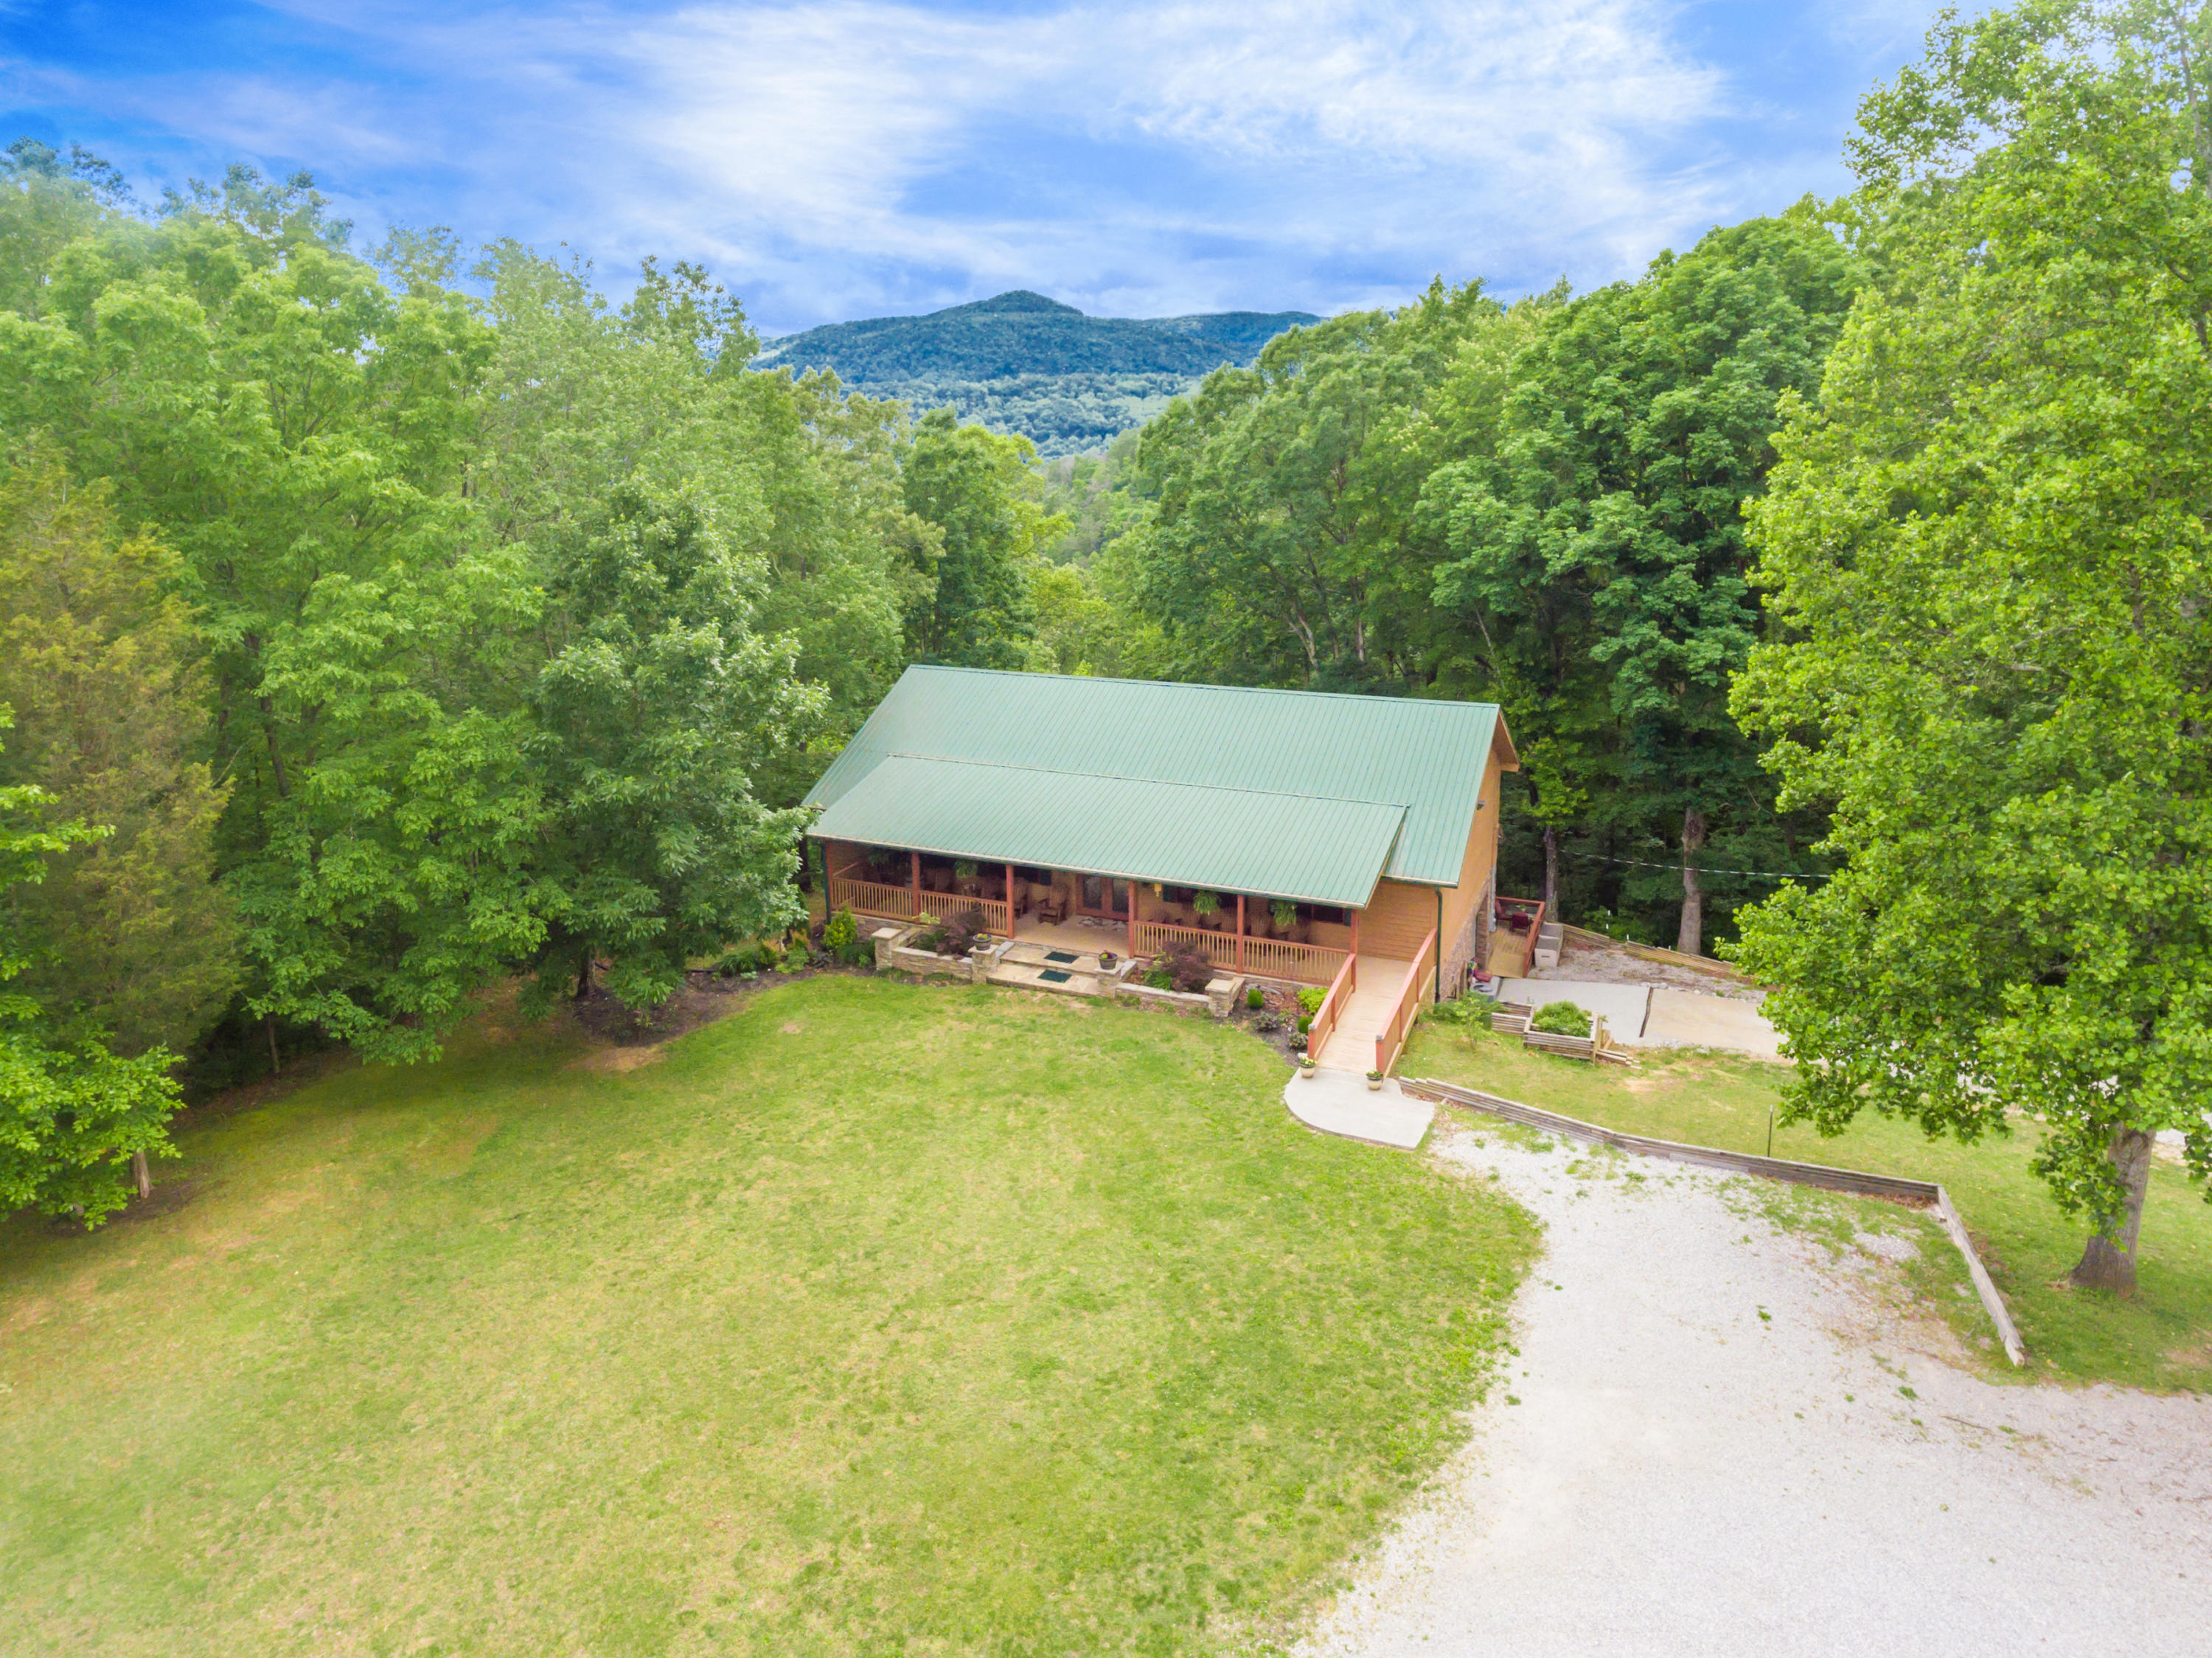 20200430143805098010000000-o Rocky Top anderson county homes for sale